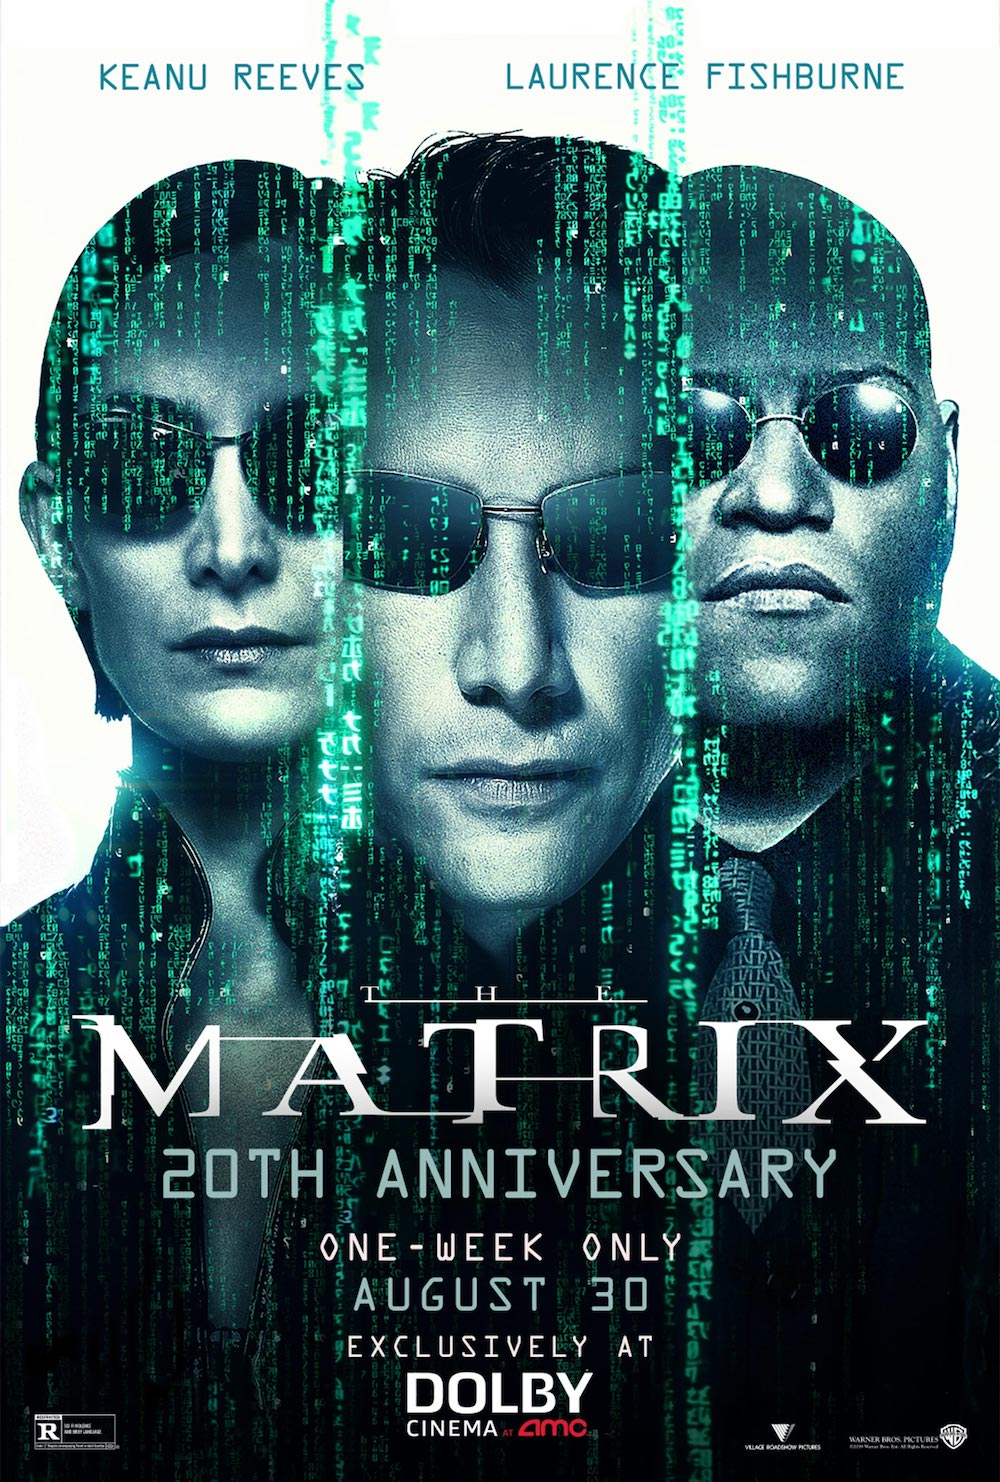 The Matrix Returns to Theaters 20th anniversary poster